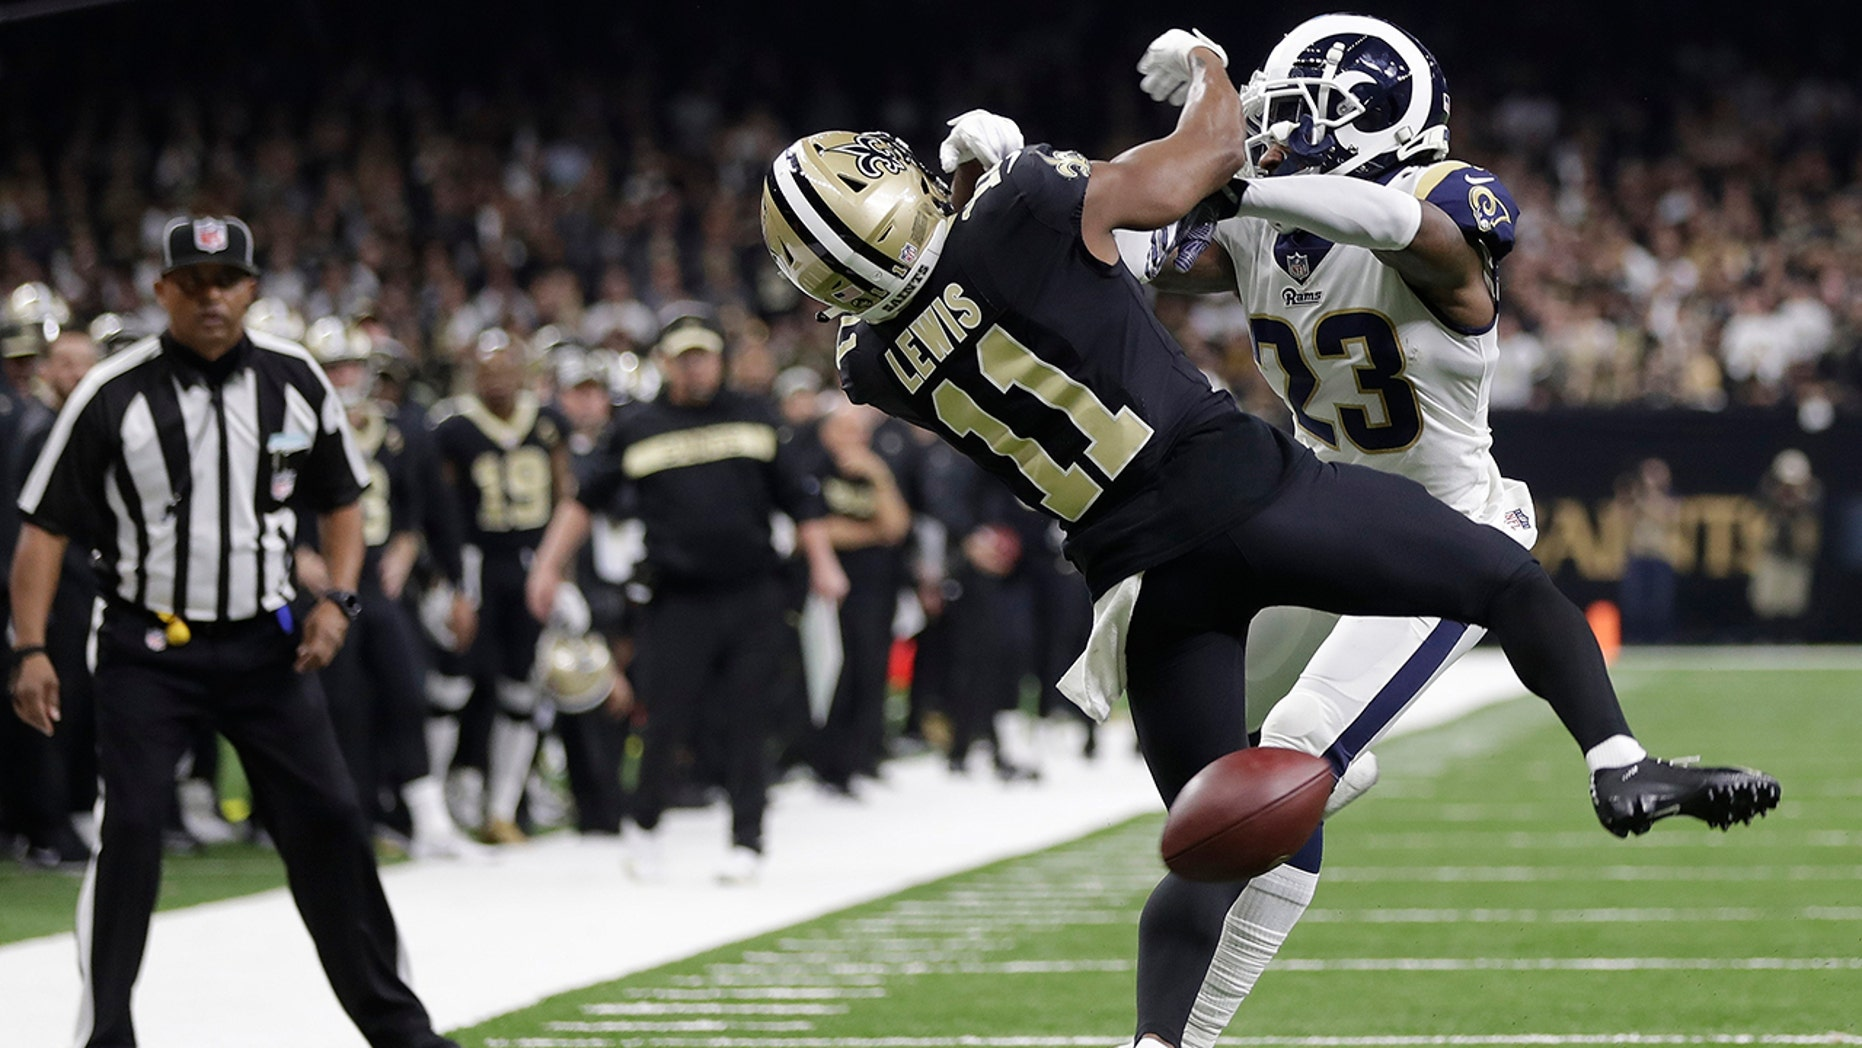 New Orleans Saints wide receiver Tommylee Lewis (11) works for a coach against Los Angeles Rams defensive back Nickell Robey-Coleman (23) during the second half the NFL football NFC championship game Sunday, Jan. 20, 2019, in New Orleans. The Rams won 26-23.